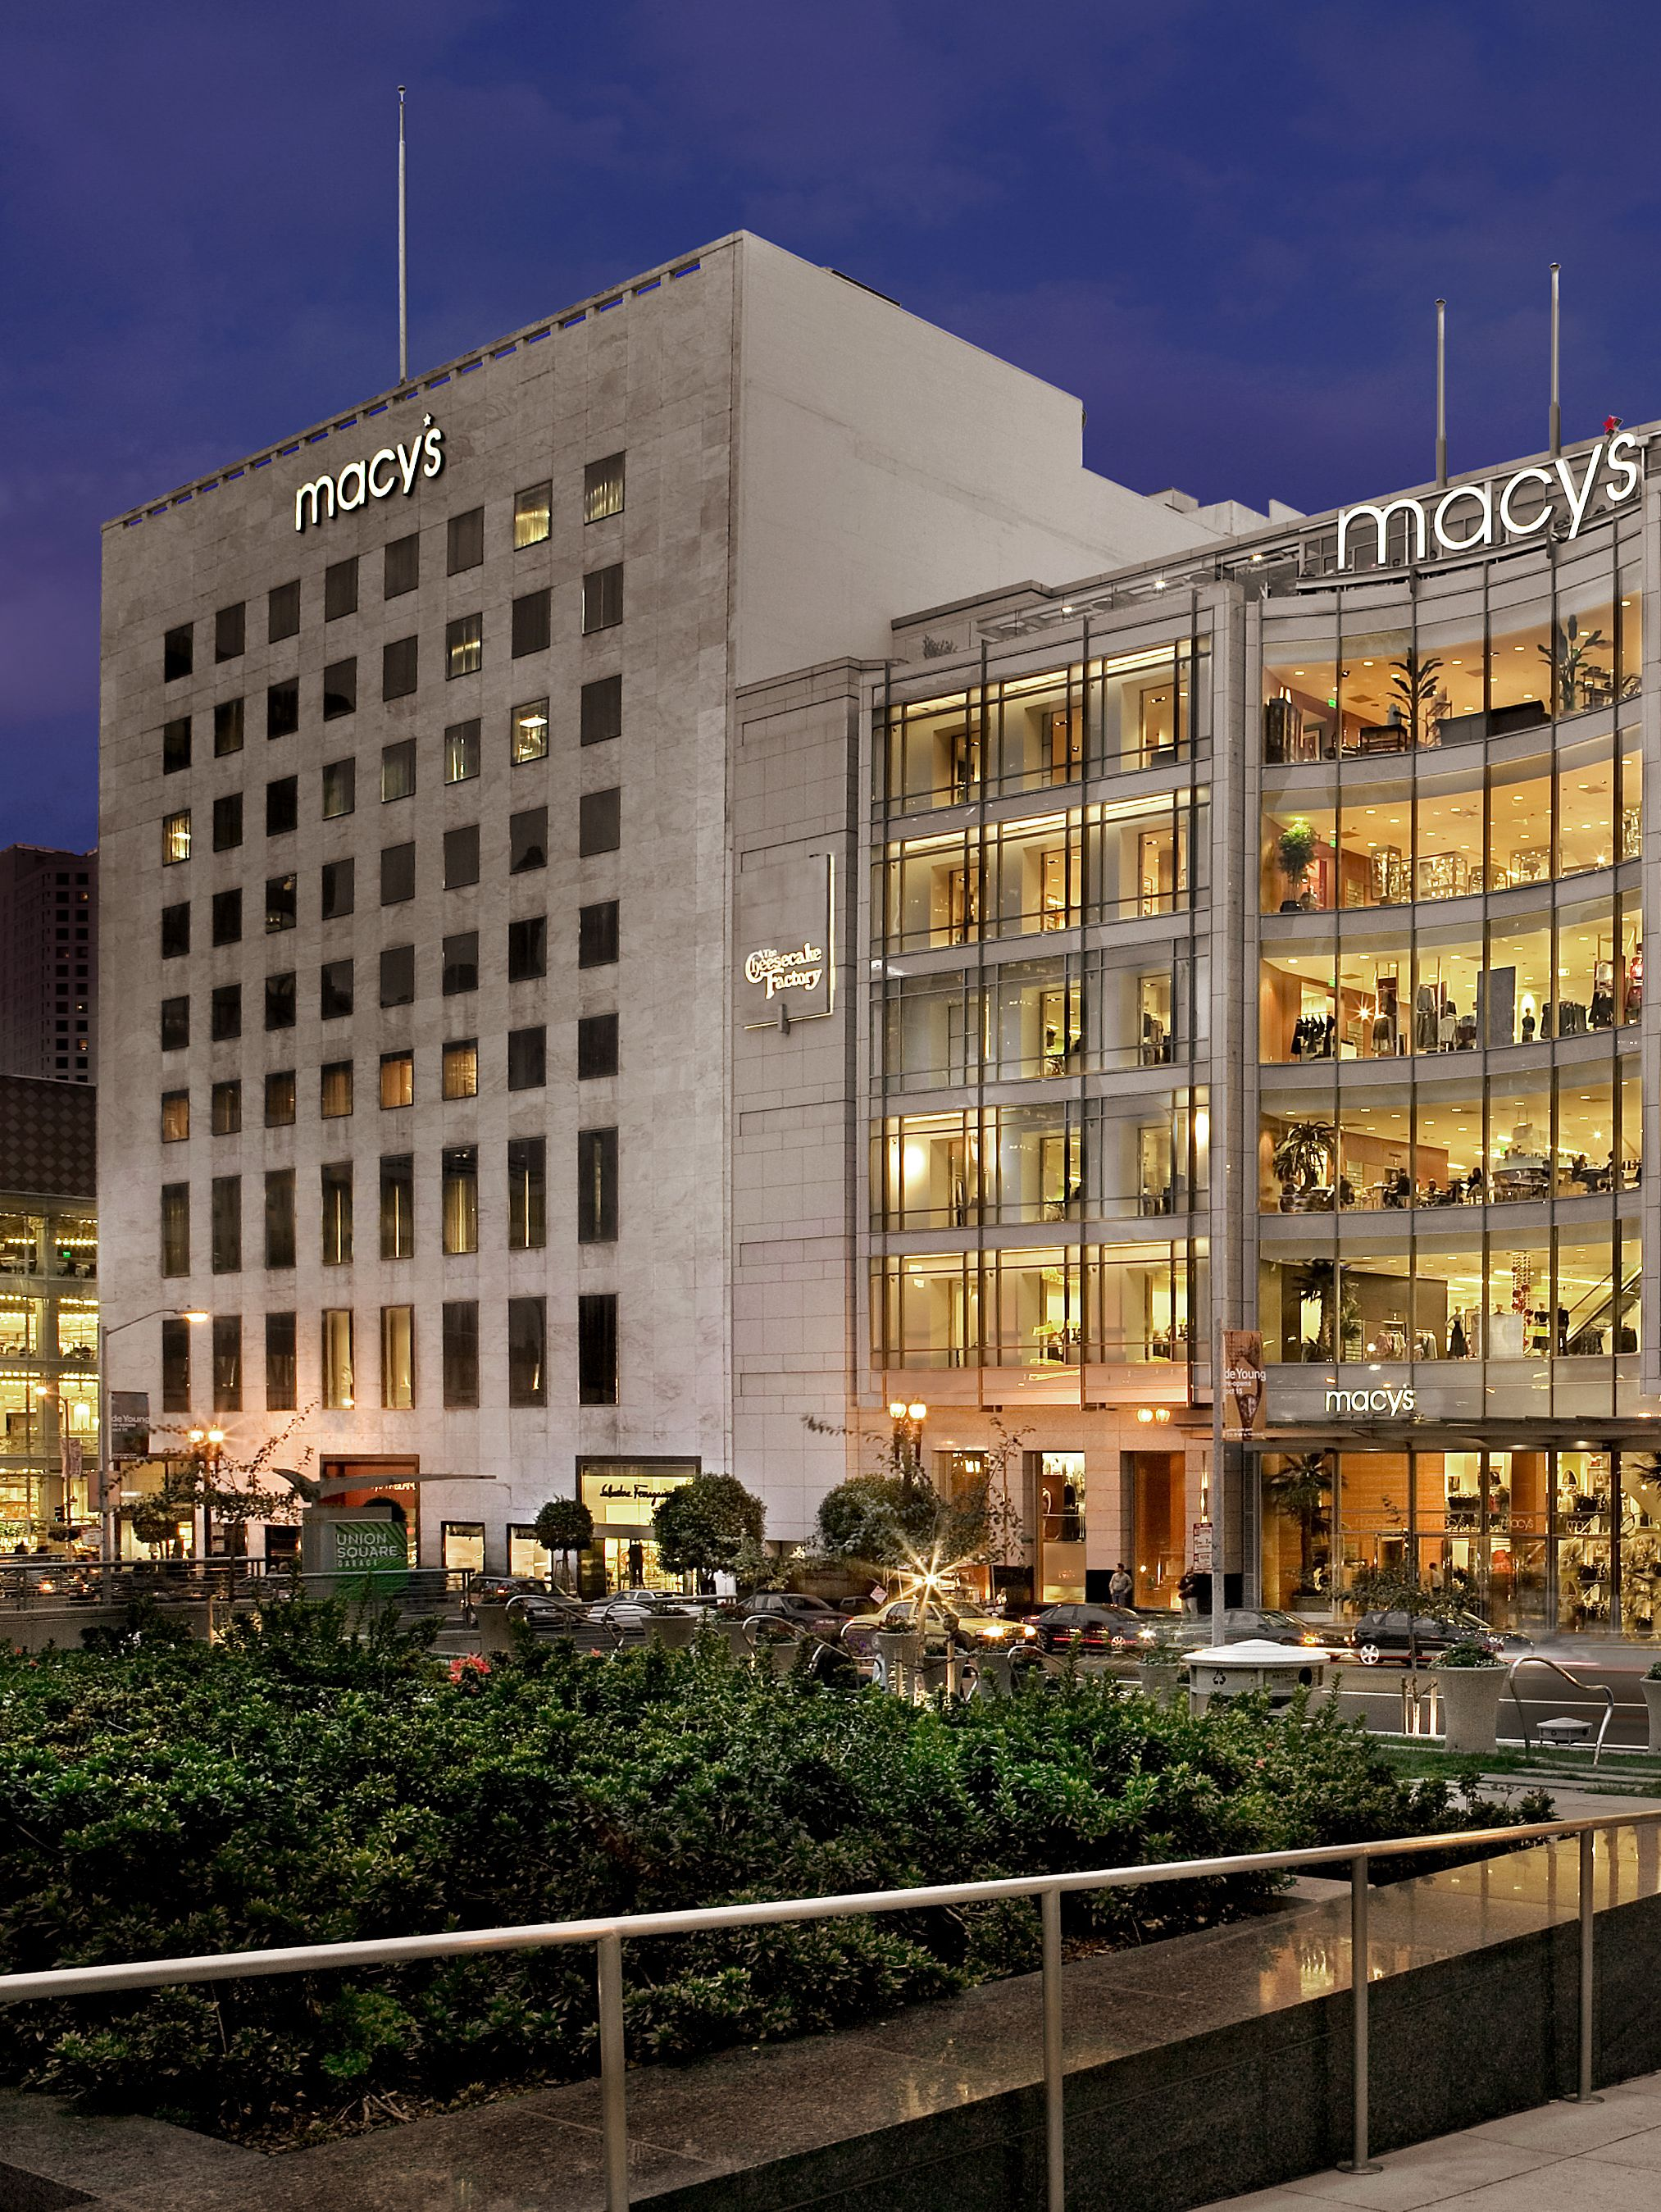 department store  macy u2019s to close around 100 stores and